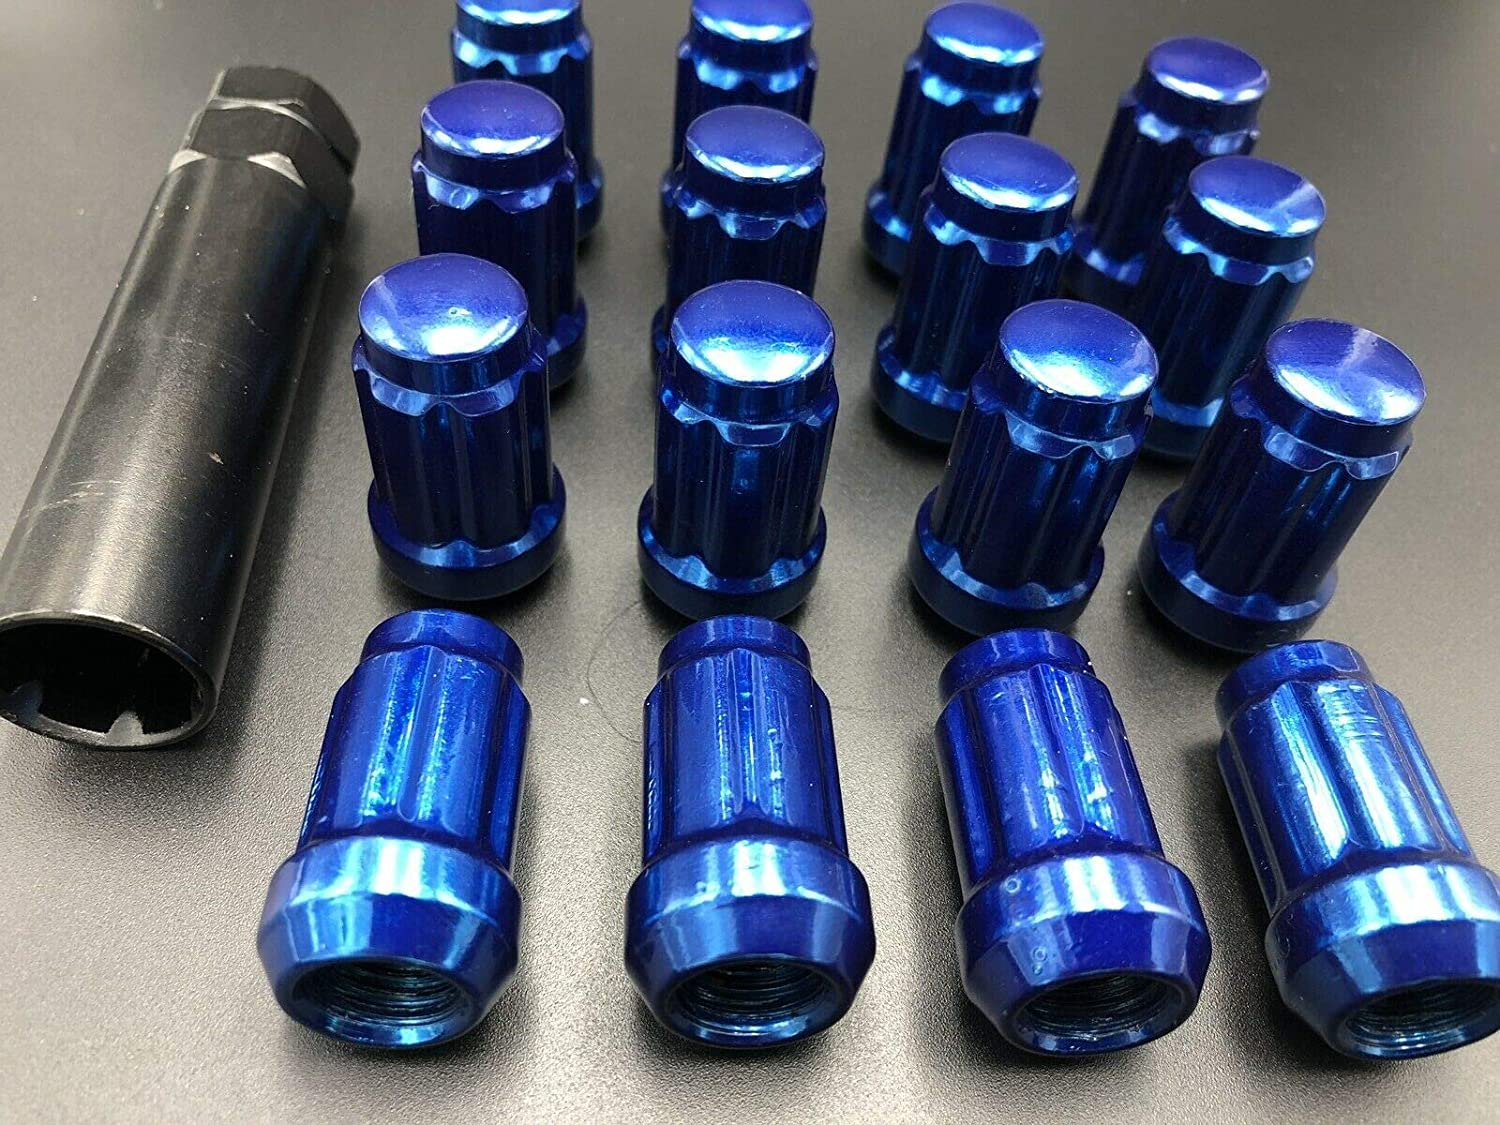 Dark Blue Locking ATV UTV Lug Nuts with Key 12 x 1.5 Fits Ranger RZR 1000 XP can Am Maverick X3 RZR Turbo